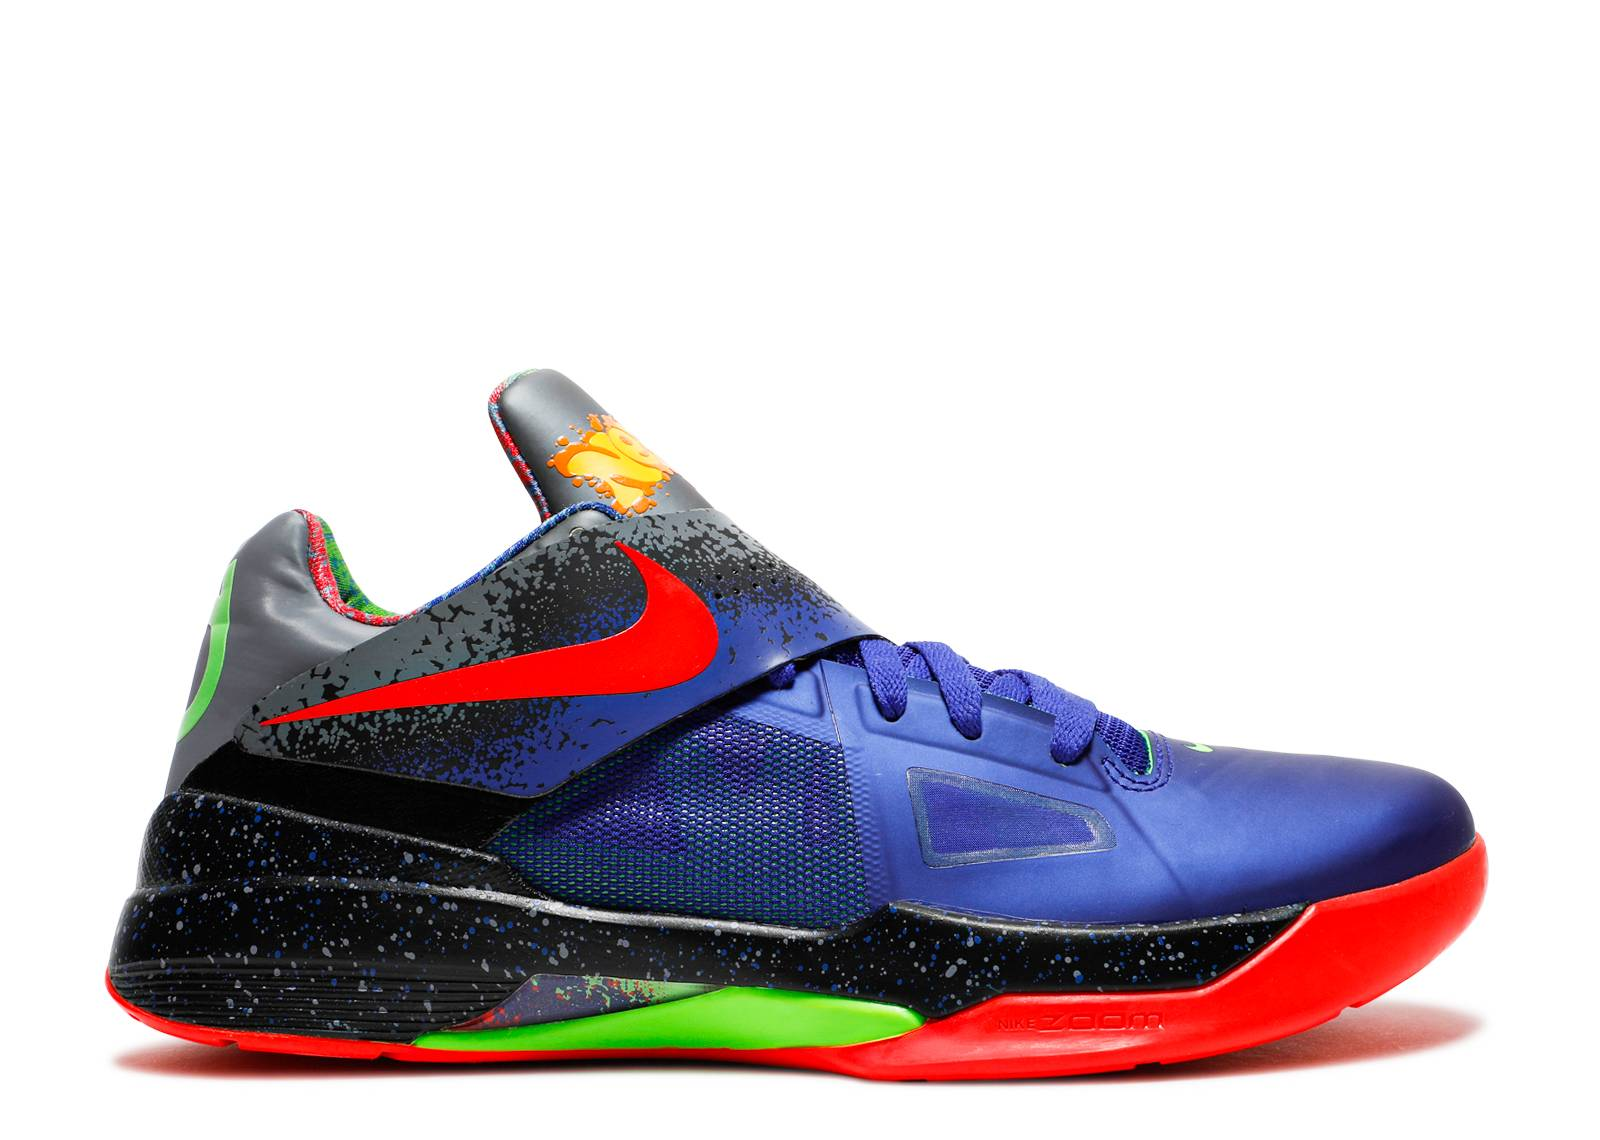 7dde7780d568 ... discount code for nike. zoom kd 4 nerf nerf 2ee5c cd022